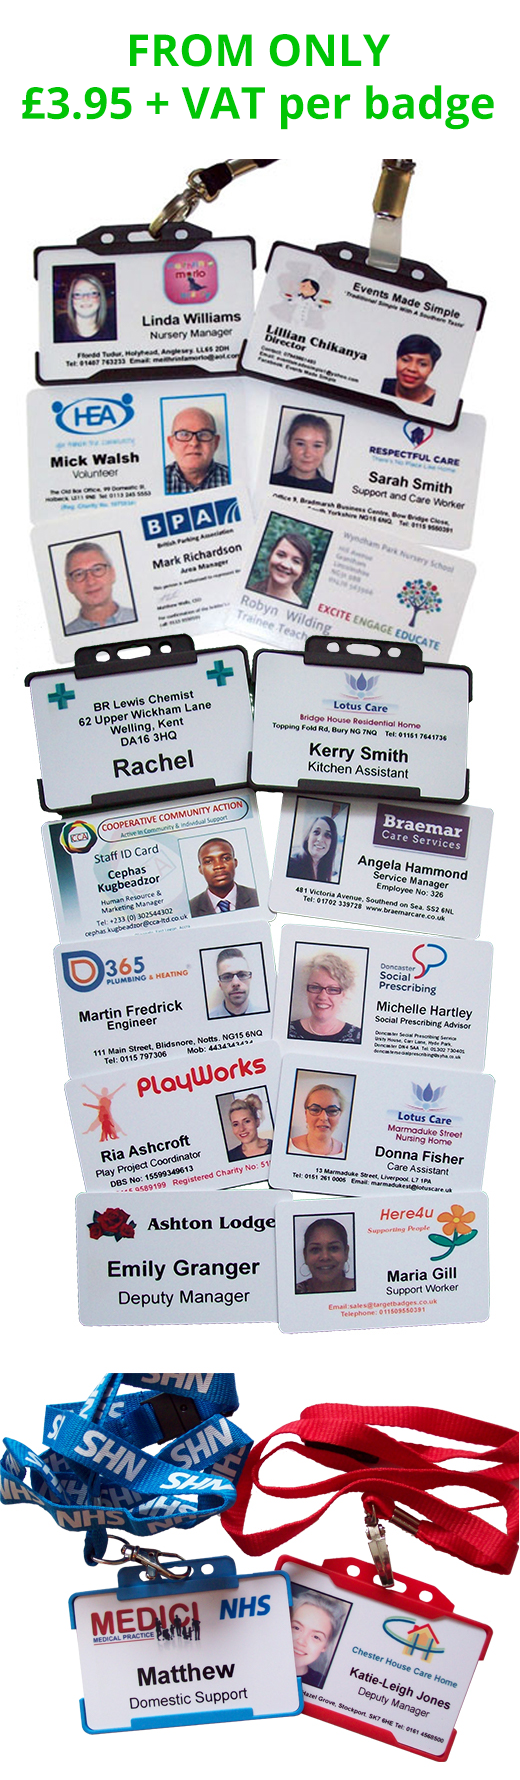 Photo ID Cards & ID Badges